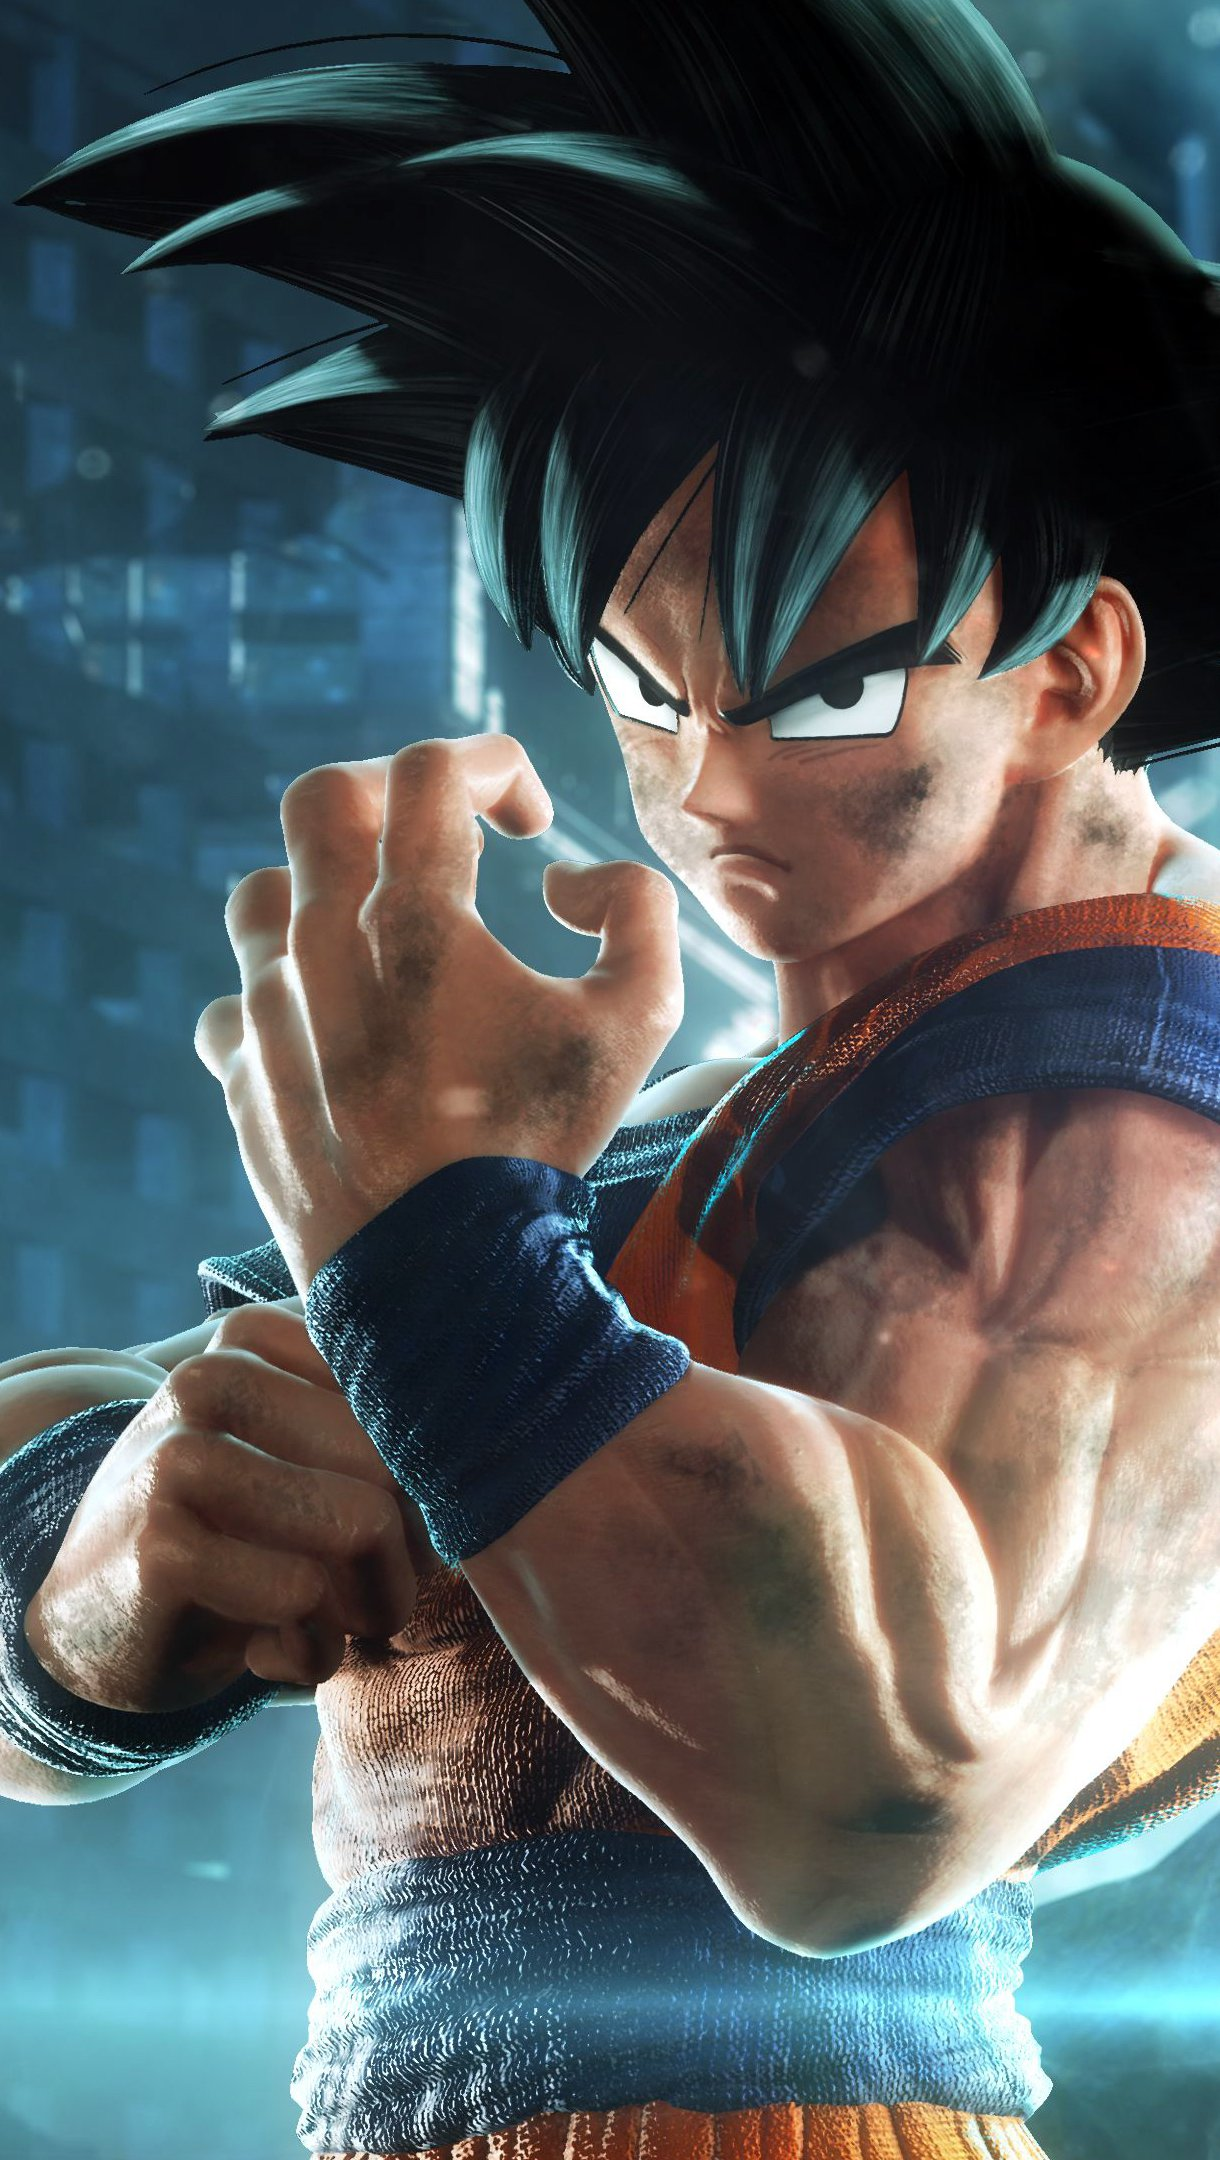 Fondos de pantalla Goku de Dragon Ball en Jump Force Vertical